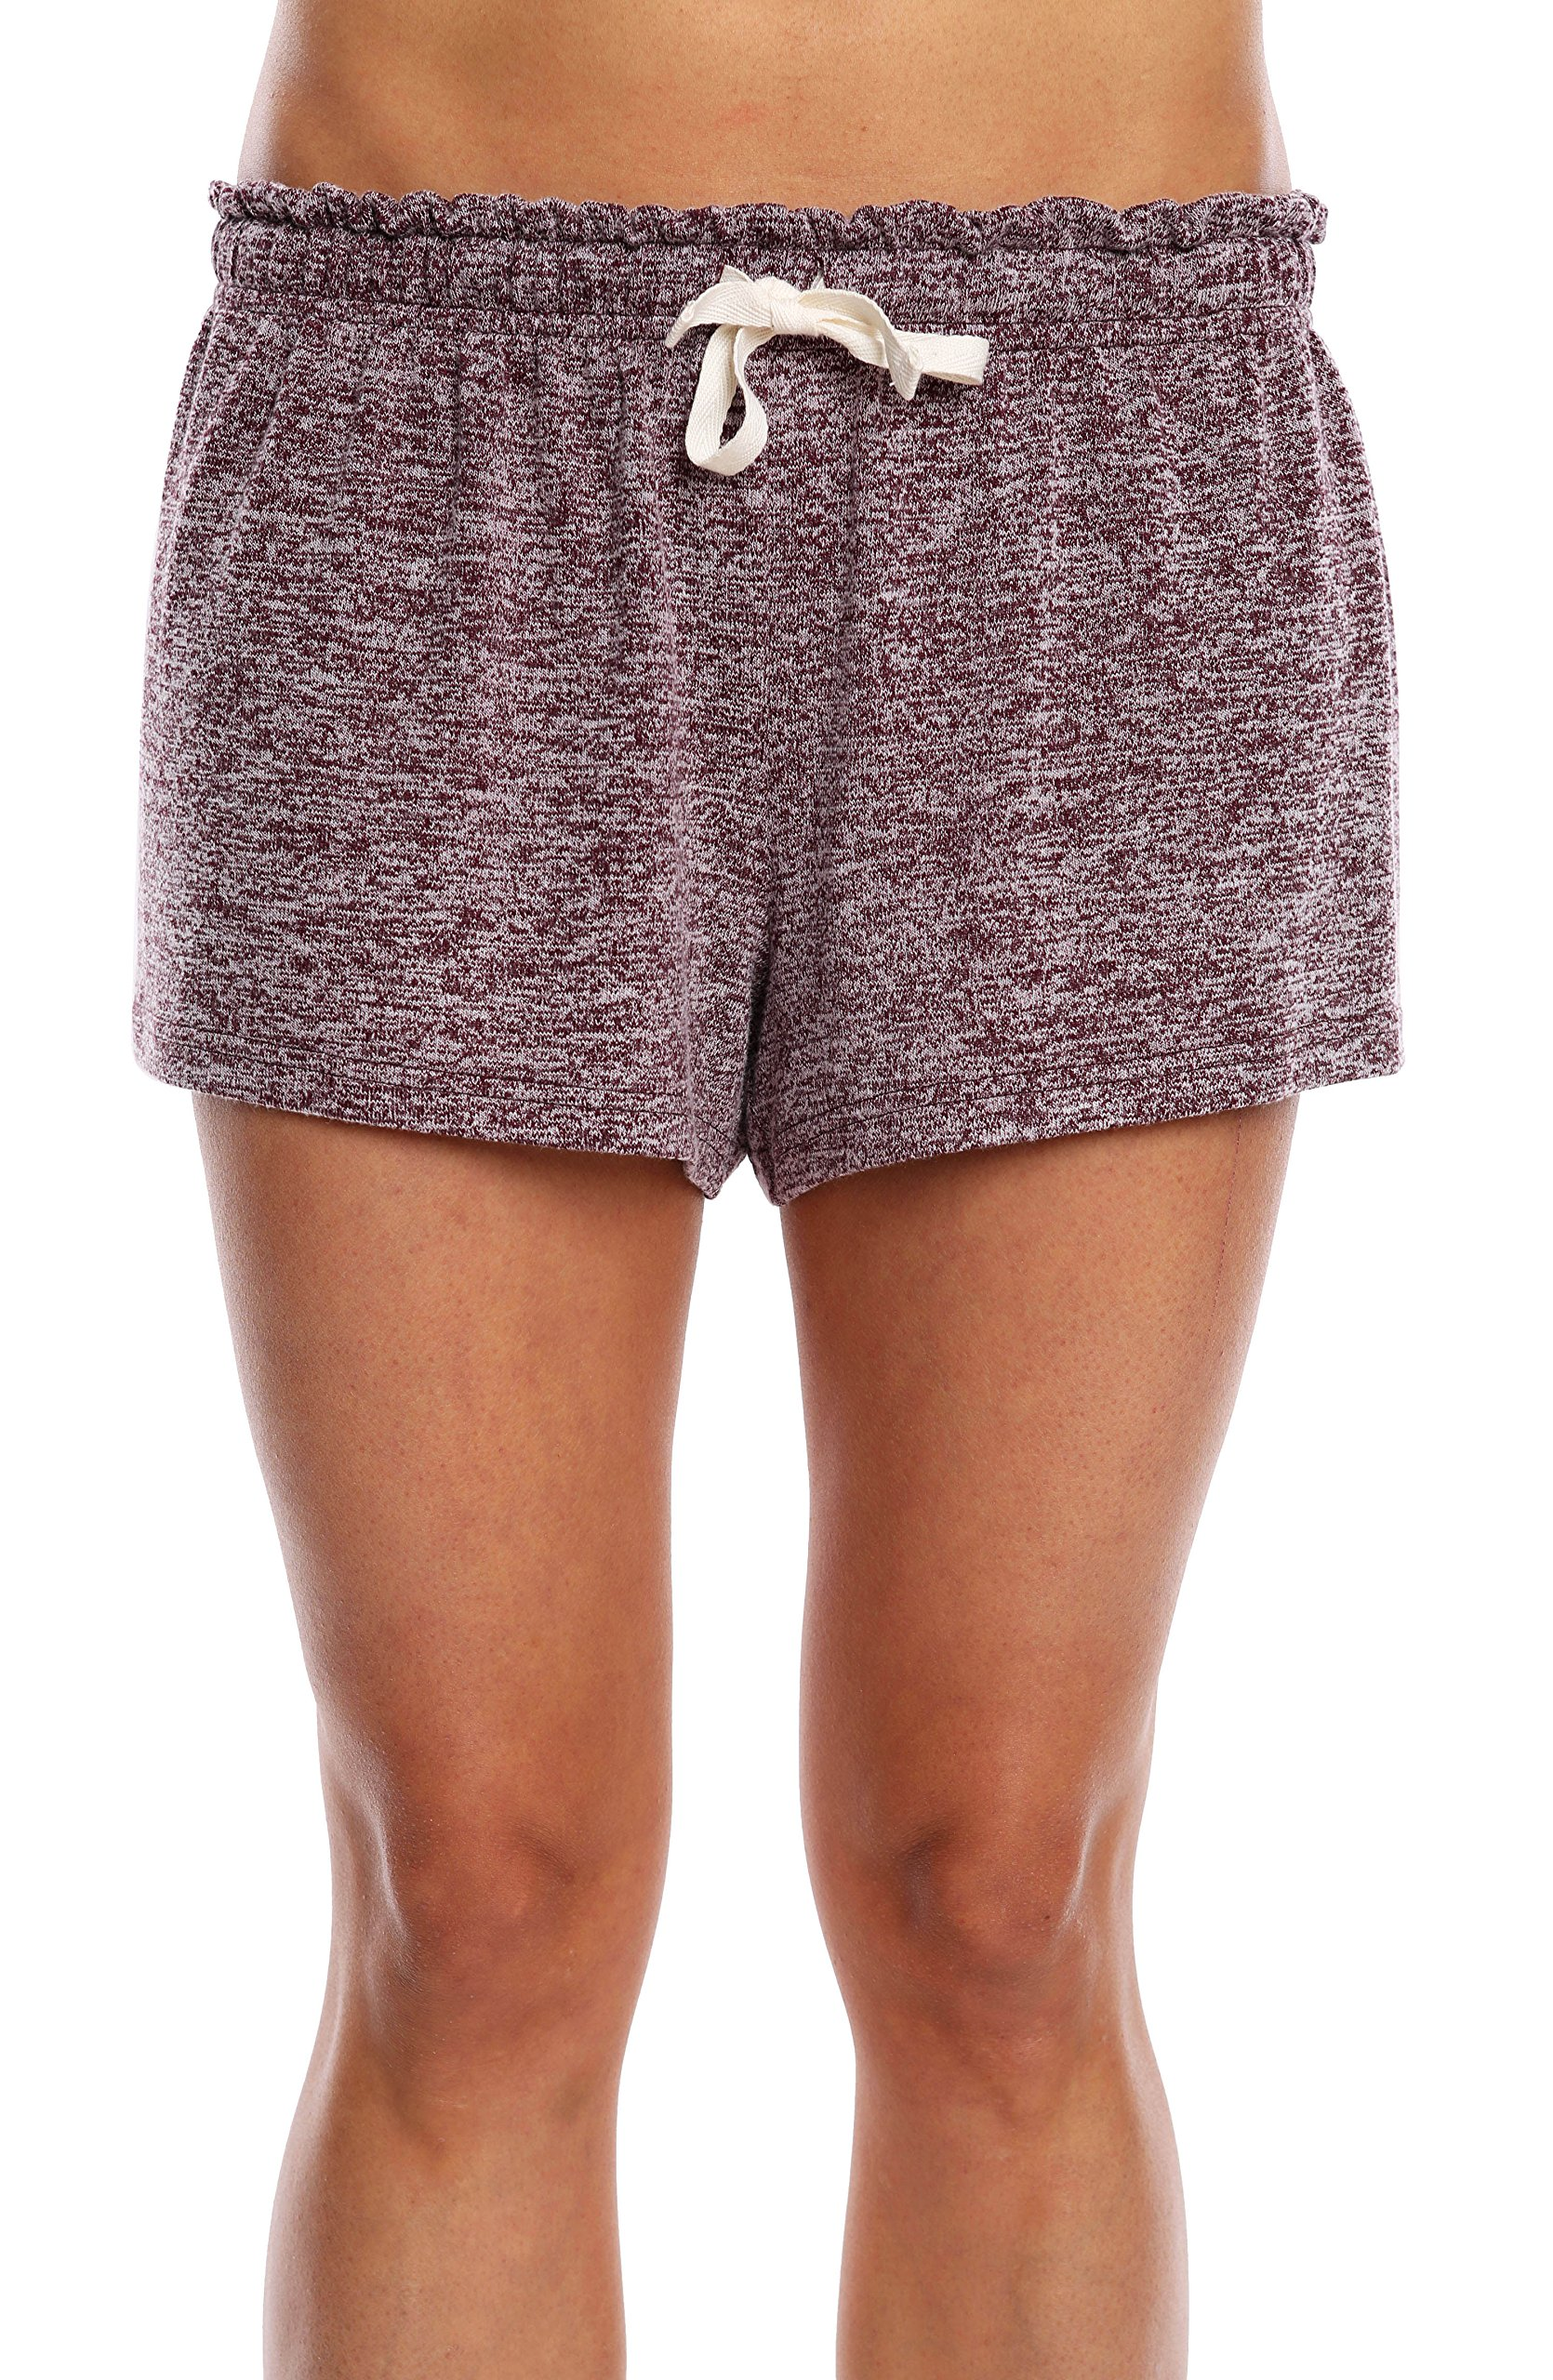 WallFlower Women's Solid Super Soft Hacci Lounge Sleep Short - Heather Burgundy, X-Large